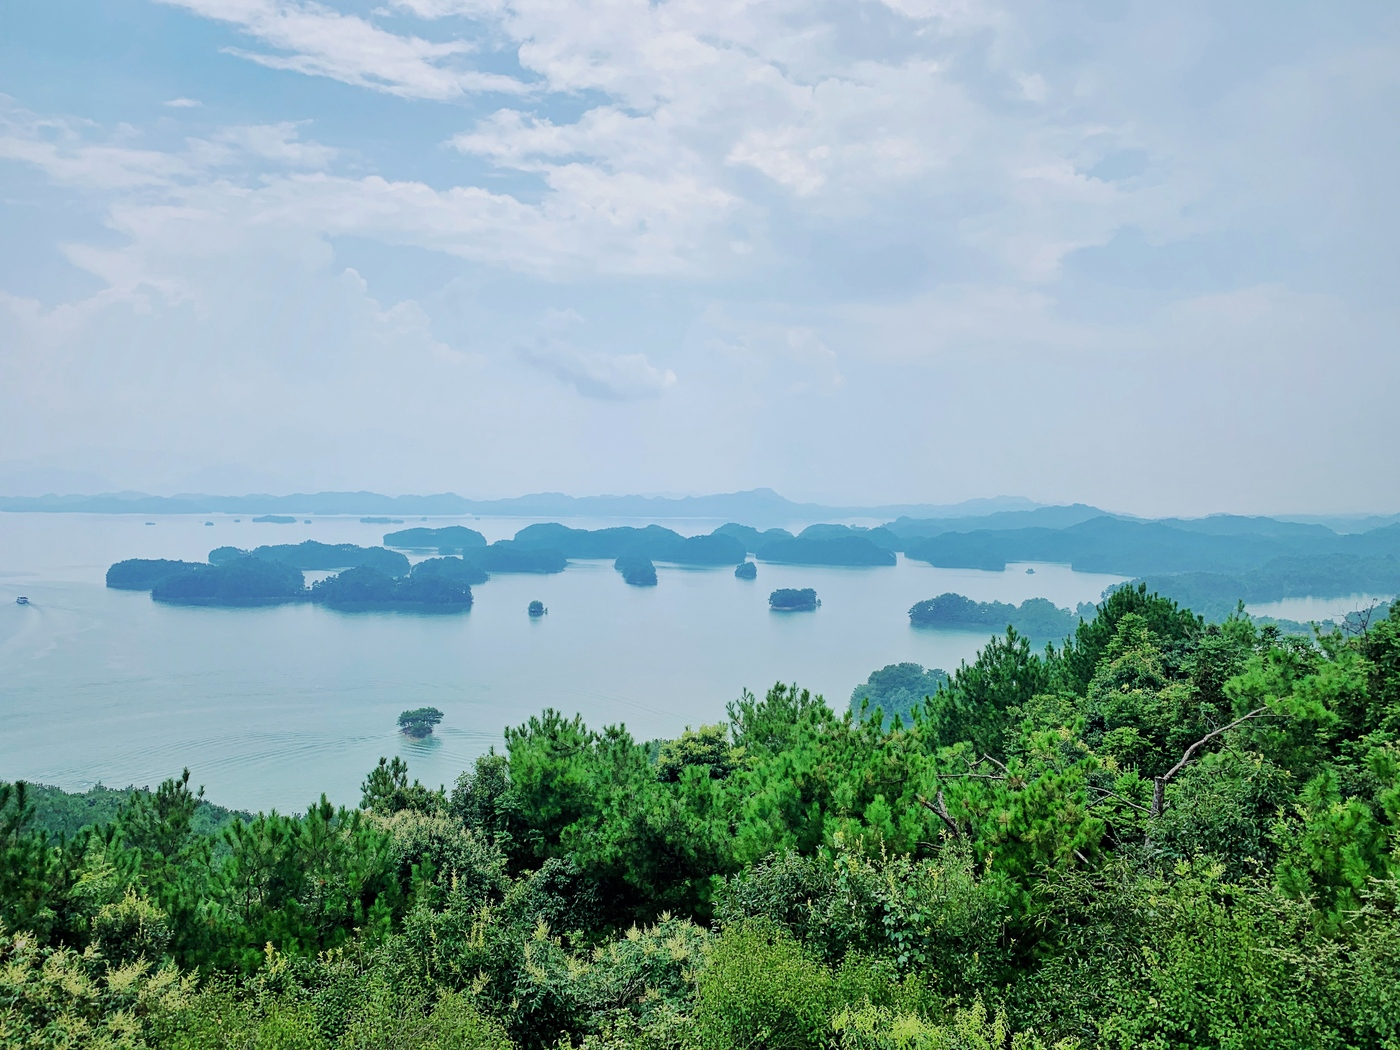 User submitted photo of Qiandao Lake